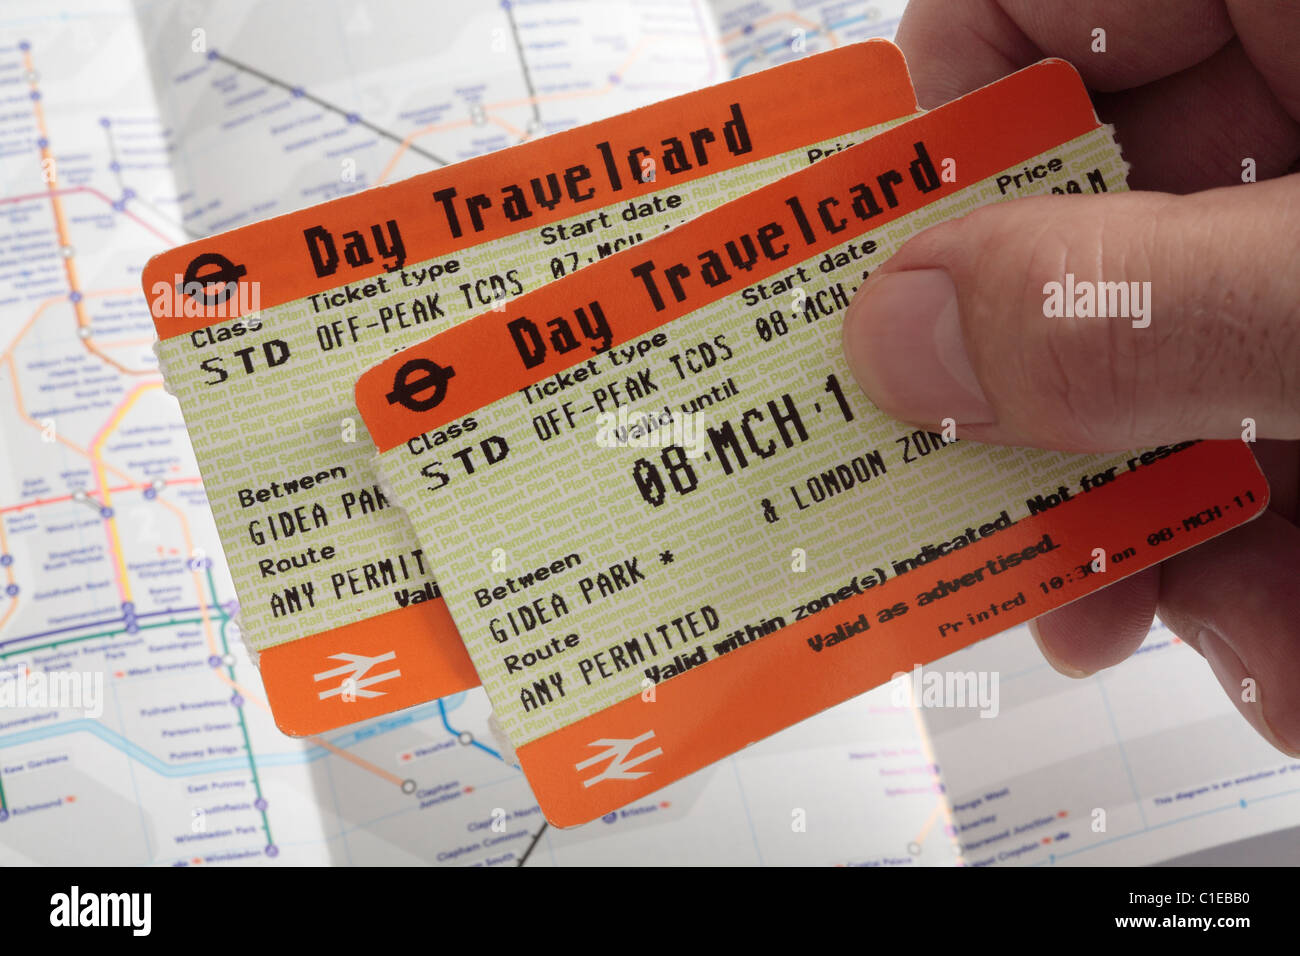 Off Peak Day Travelcards With Underground Map In